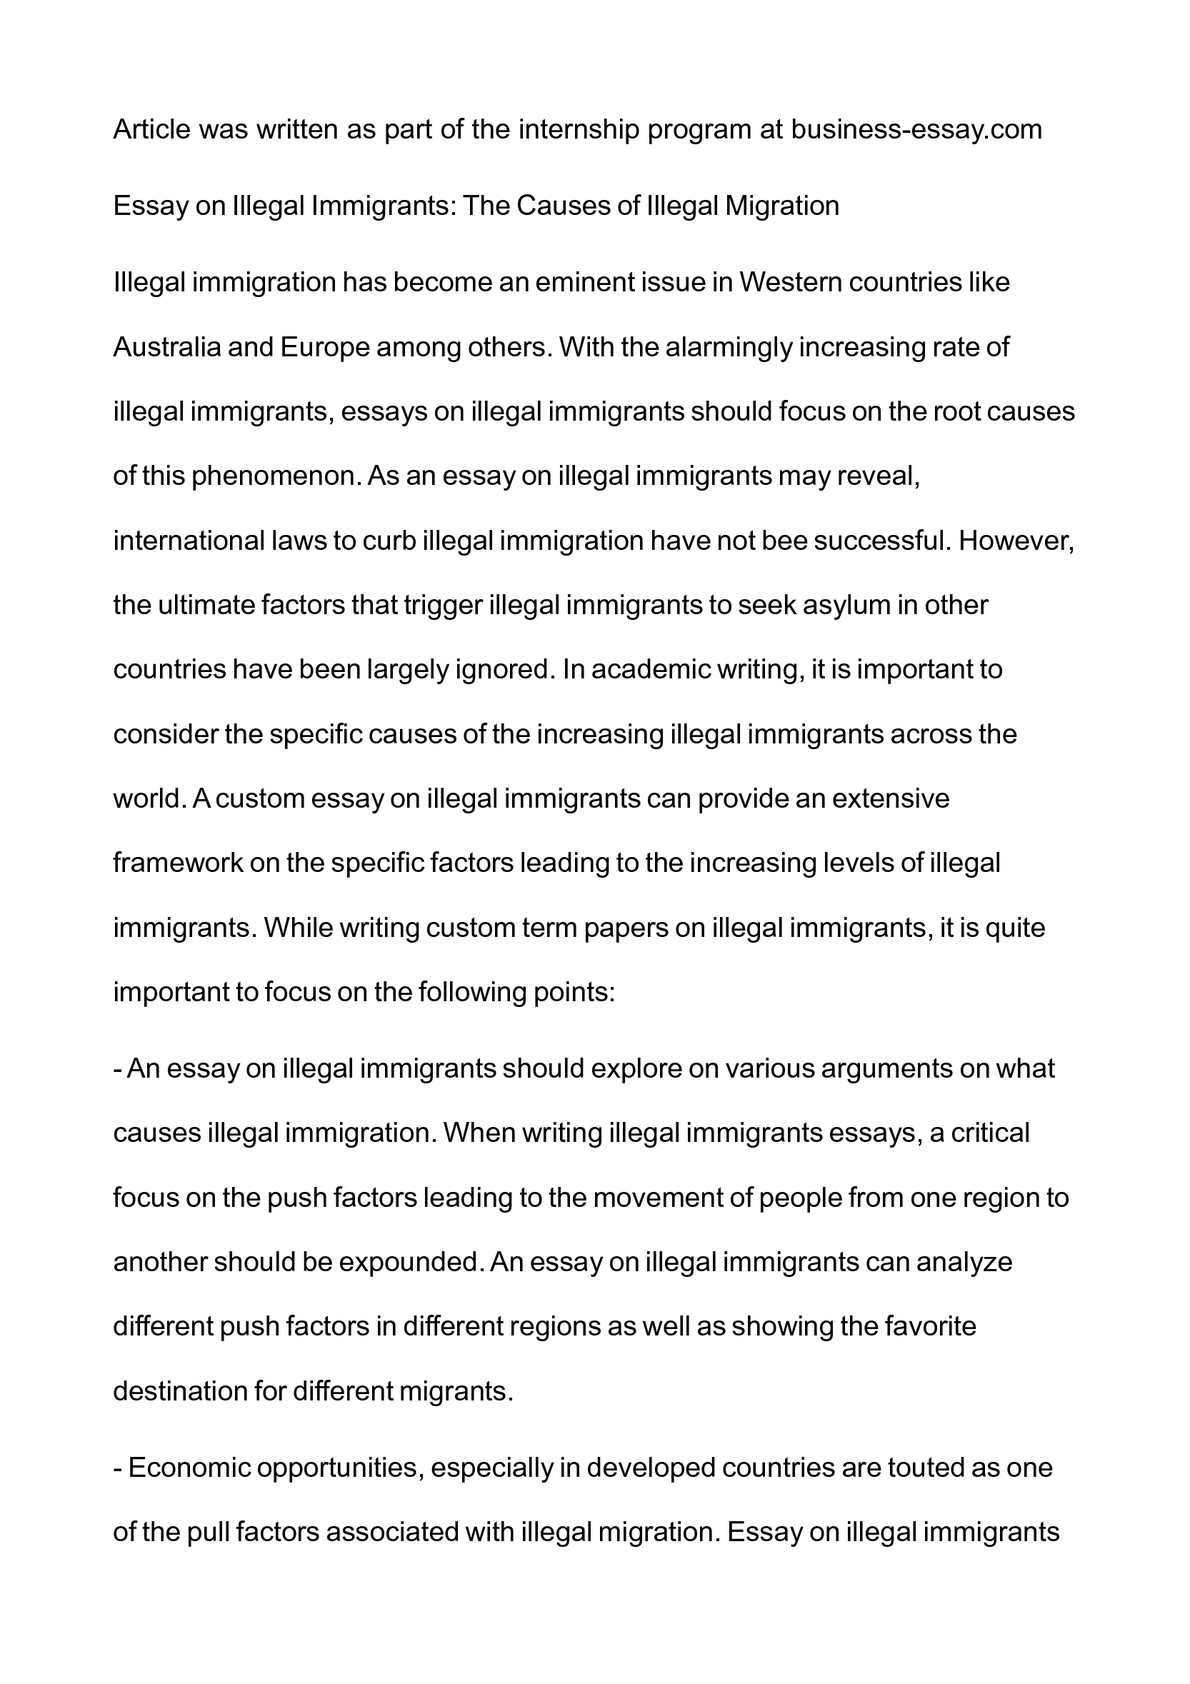 illegal immigration essays calamatilde131acirccopyo essay on illegal immigrants the causes of illegal migration